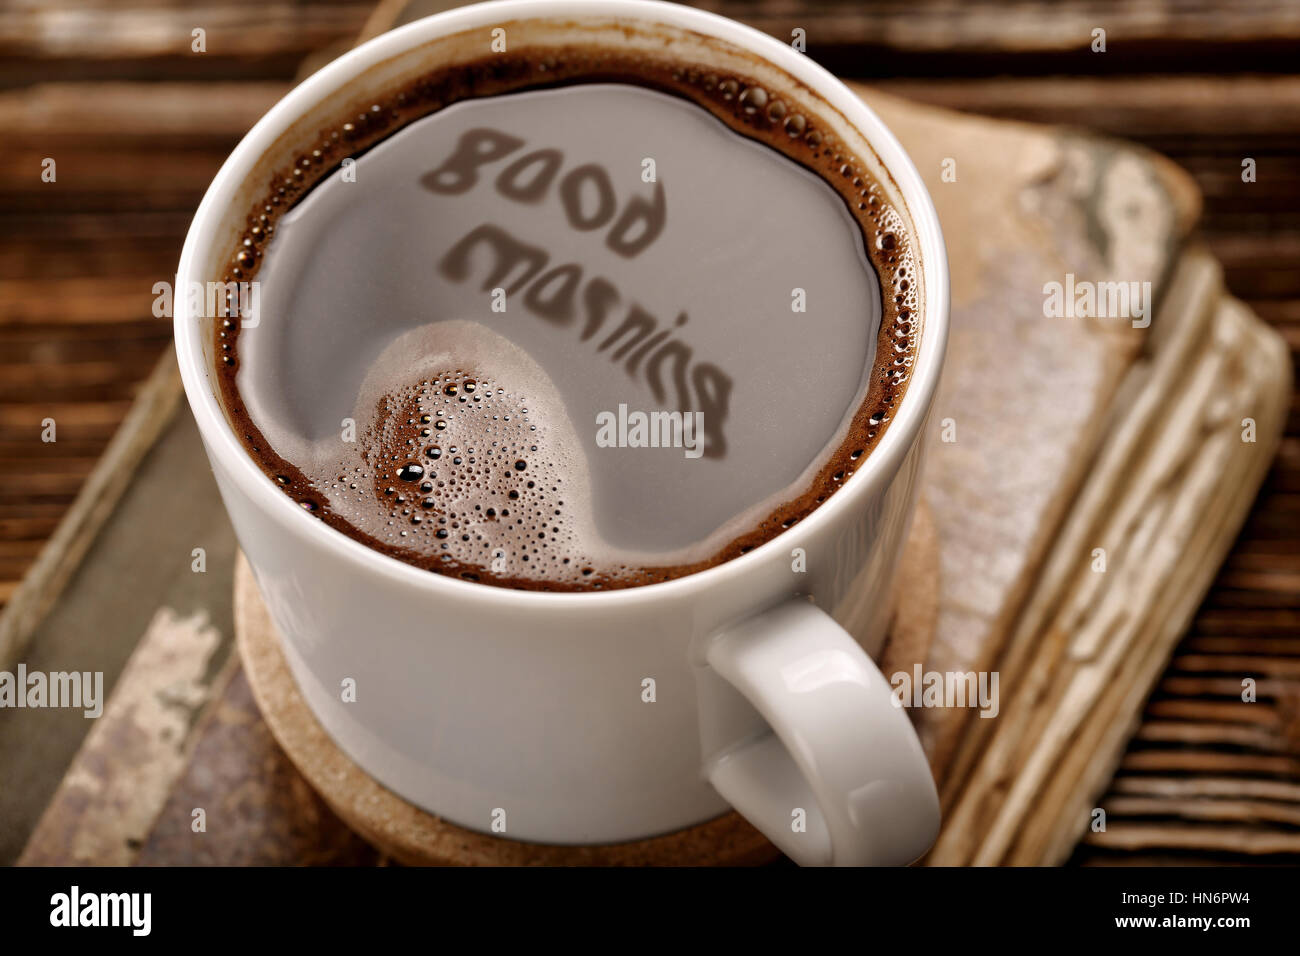 Cup of coffee and old book on wooden background with good morning inscription - Stock Image